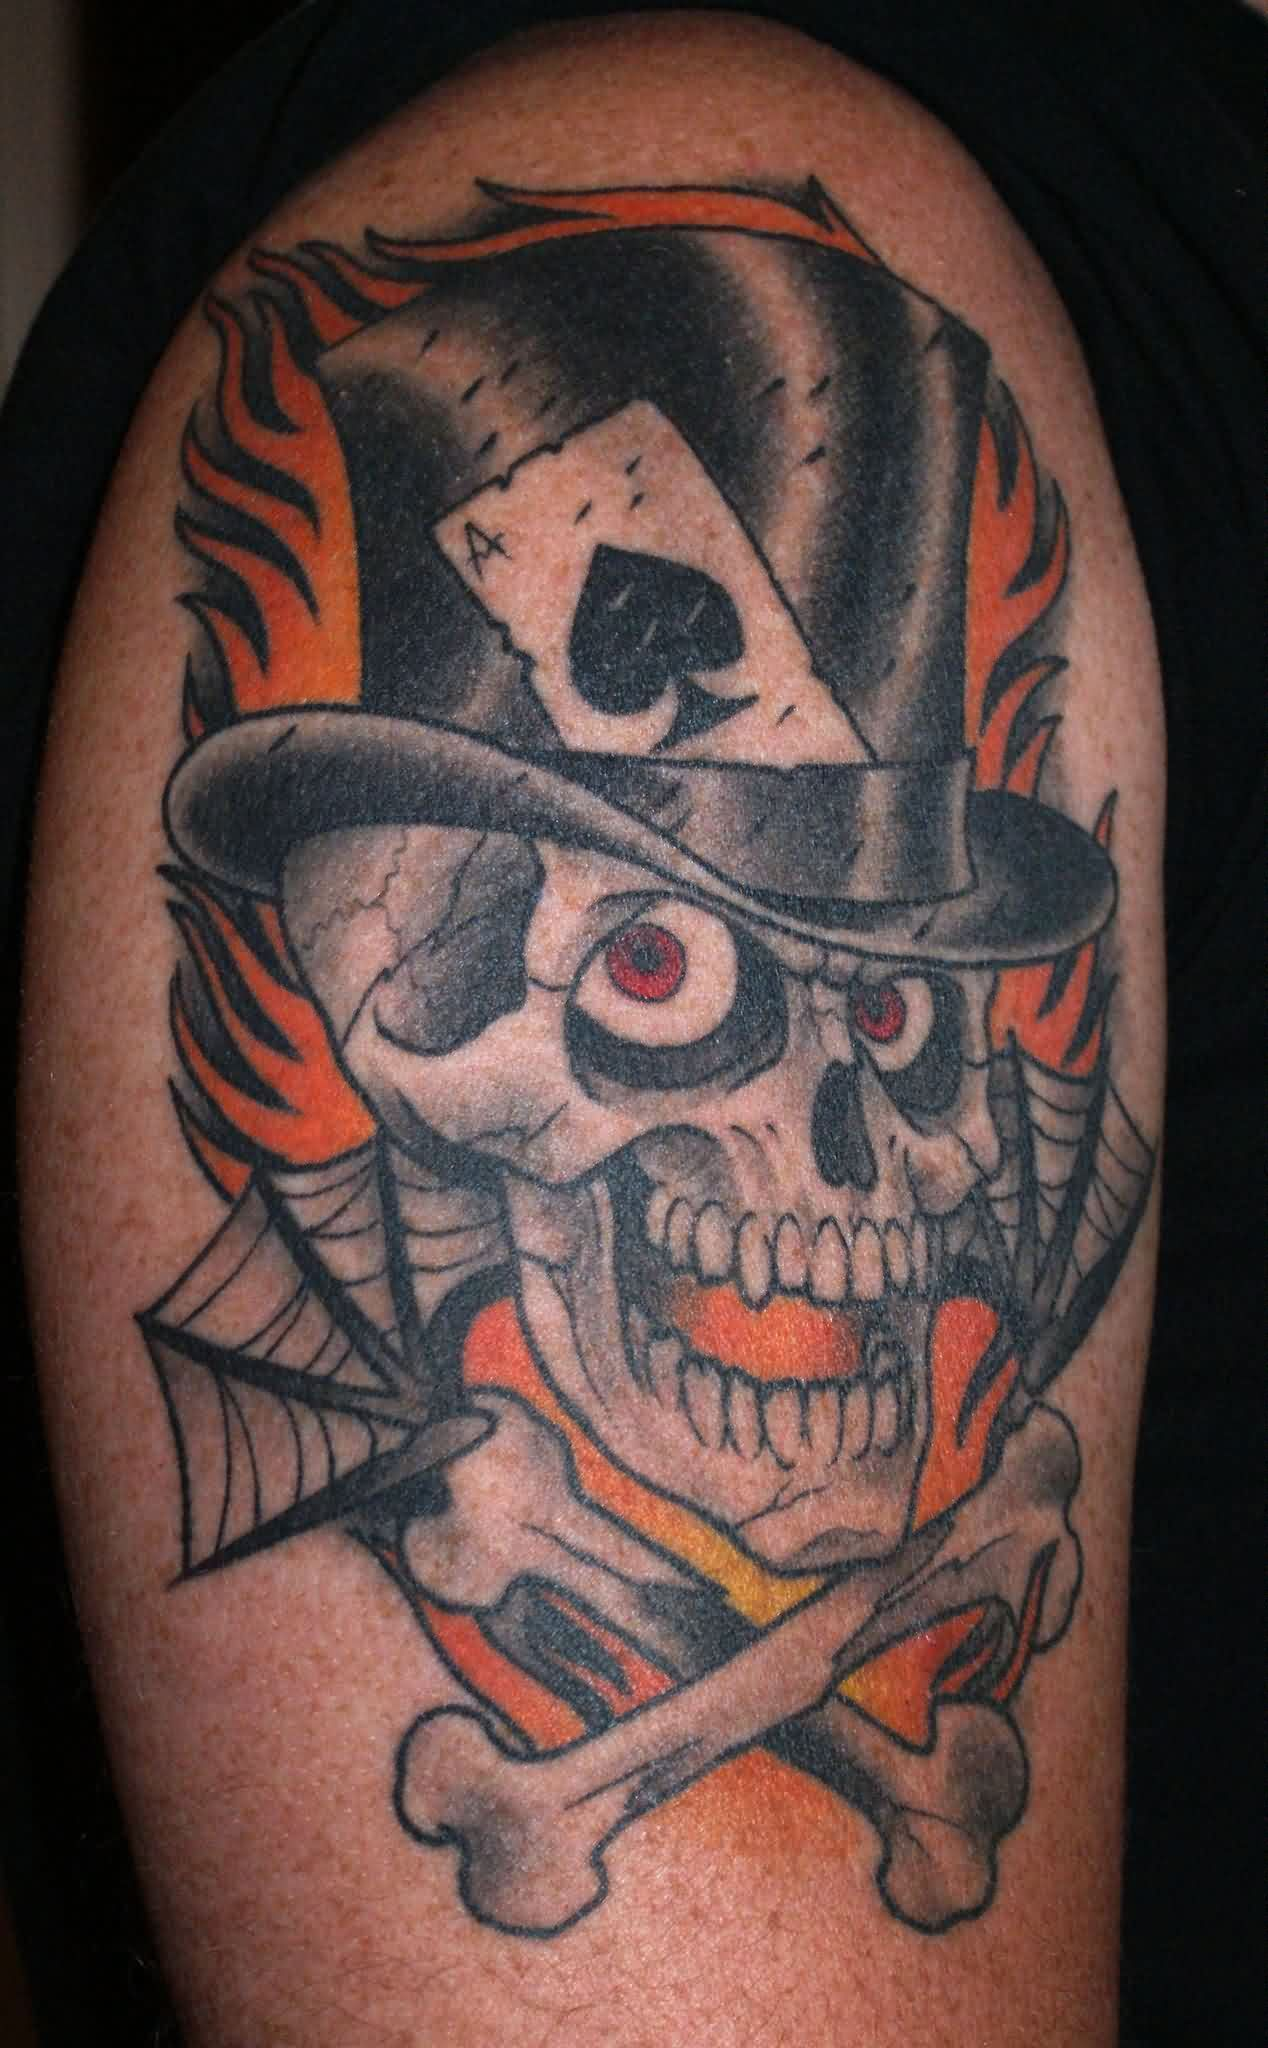 Flames Top Hat Skull And Cross Bones Tattoos